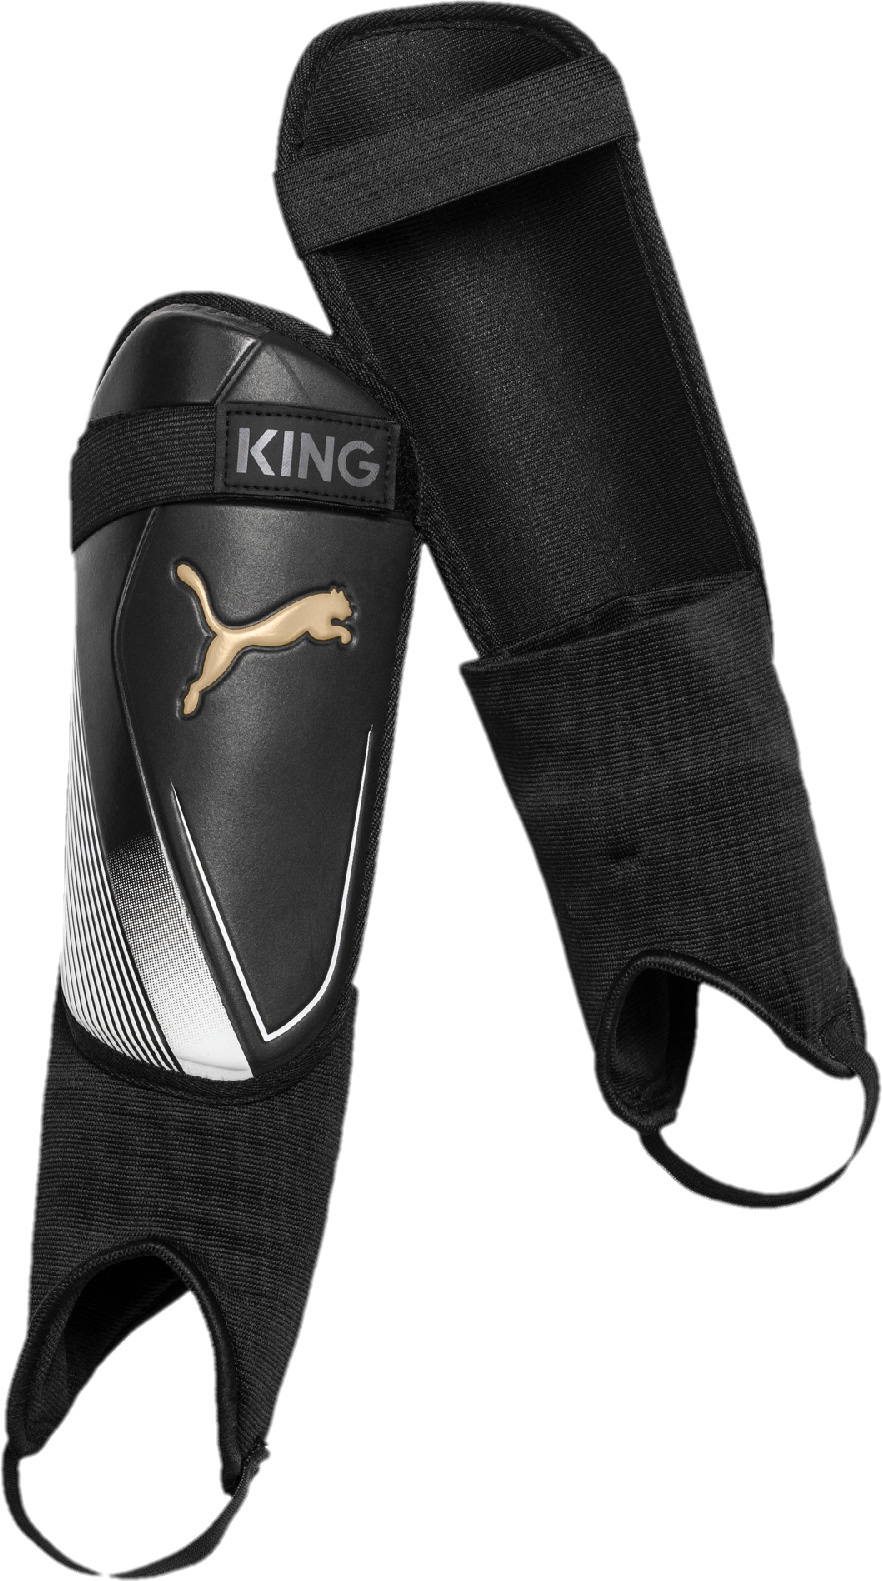 Puma PUMA King IS Shin Guard